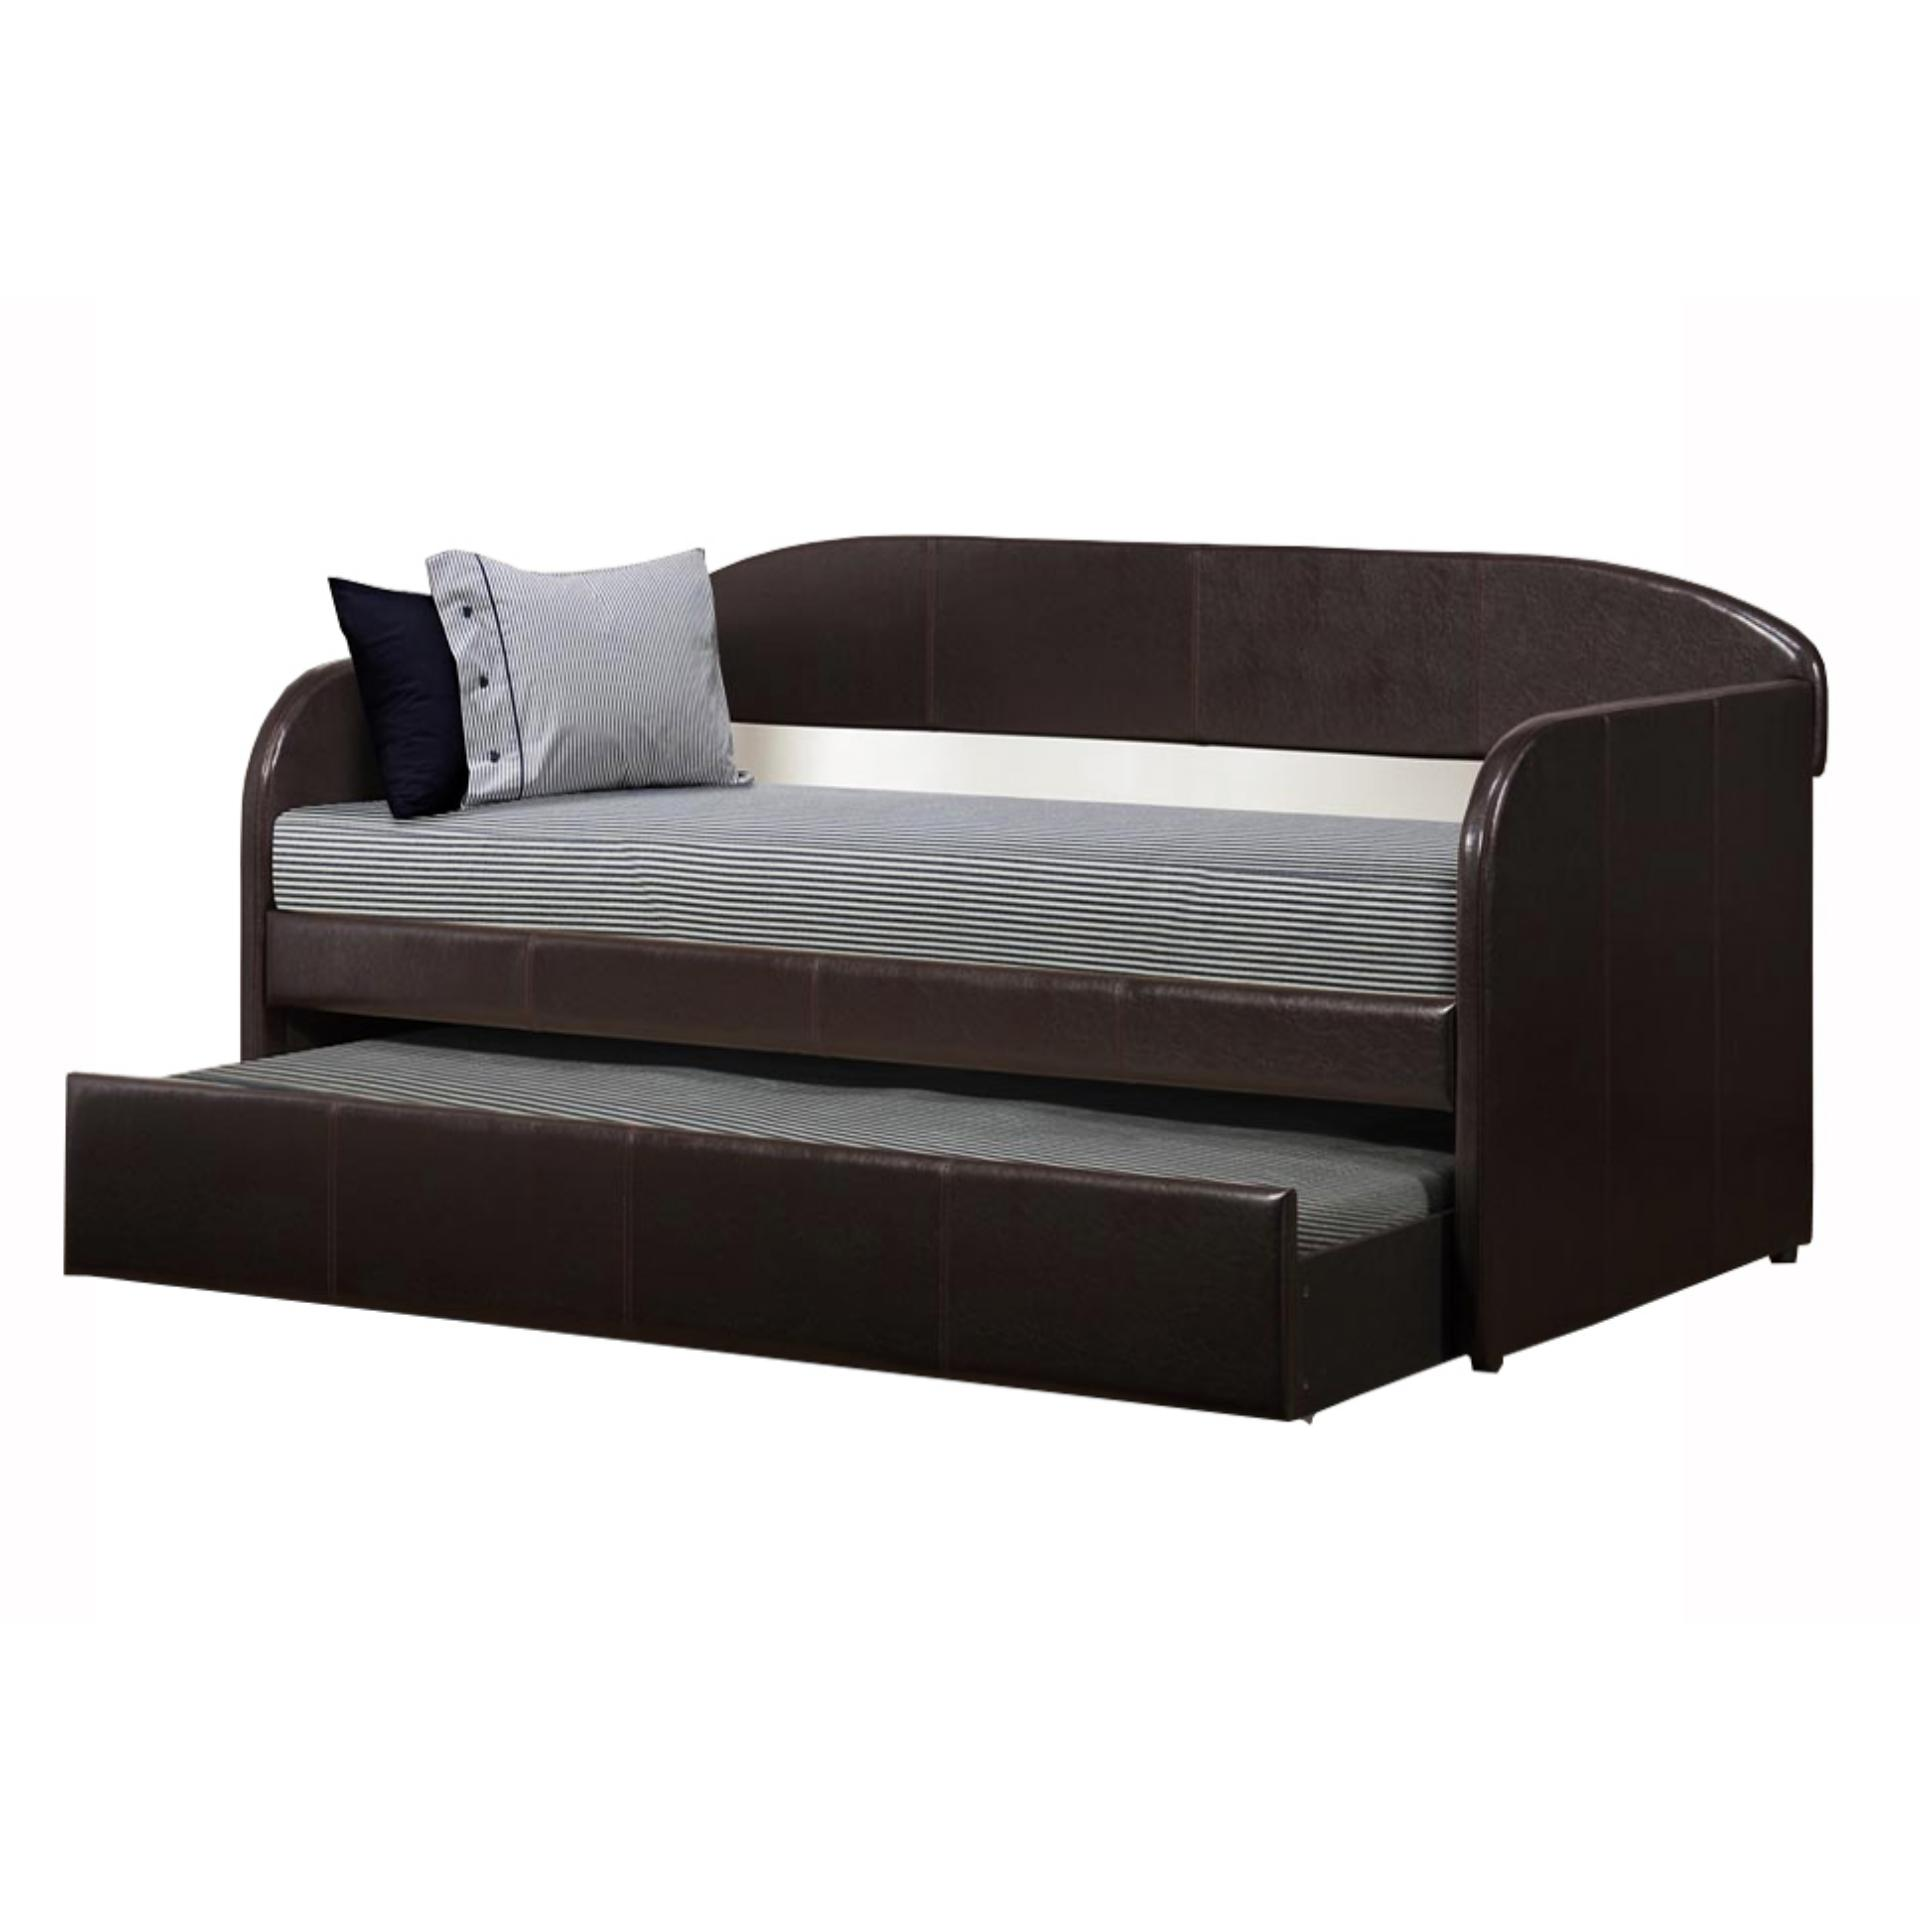 Sofa Bed For Sale Tarlac Peniton Sofa Bed 36 X 36 X 75